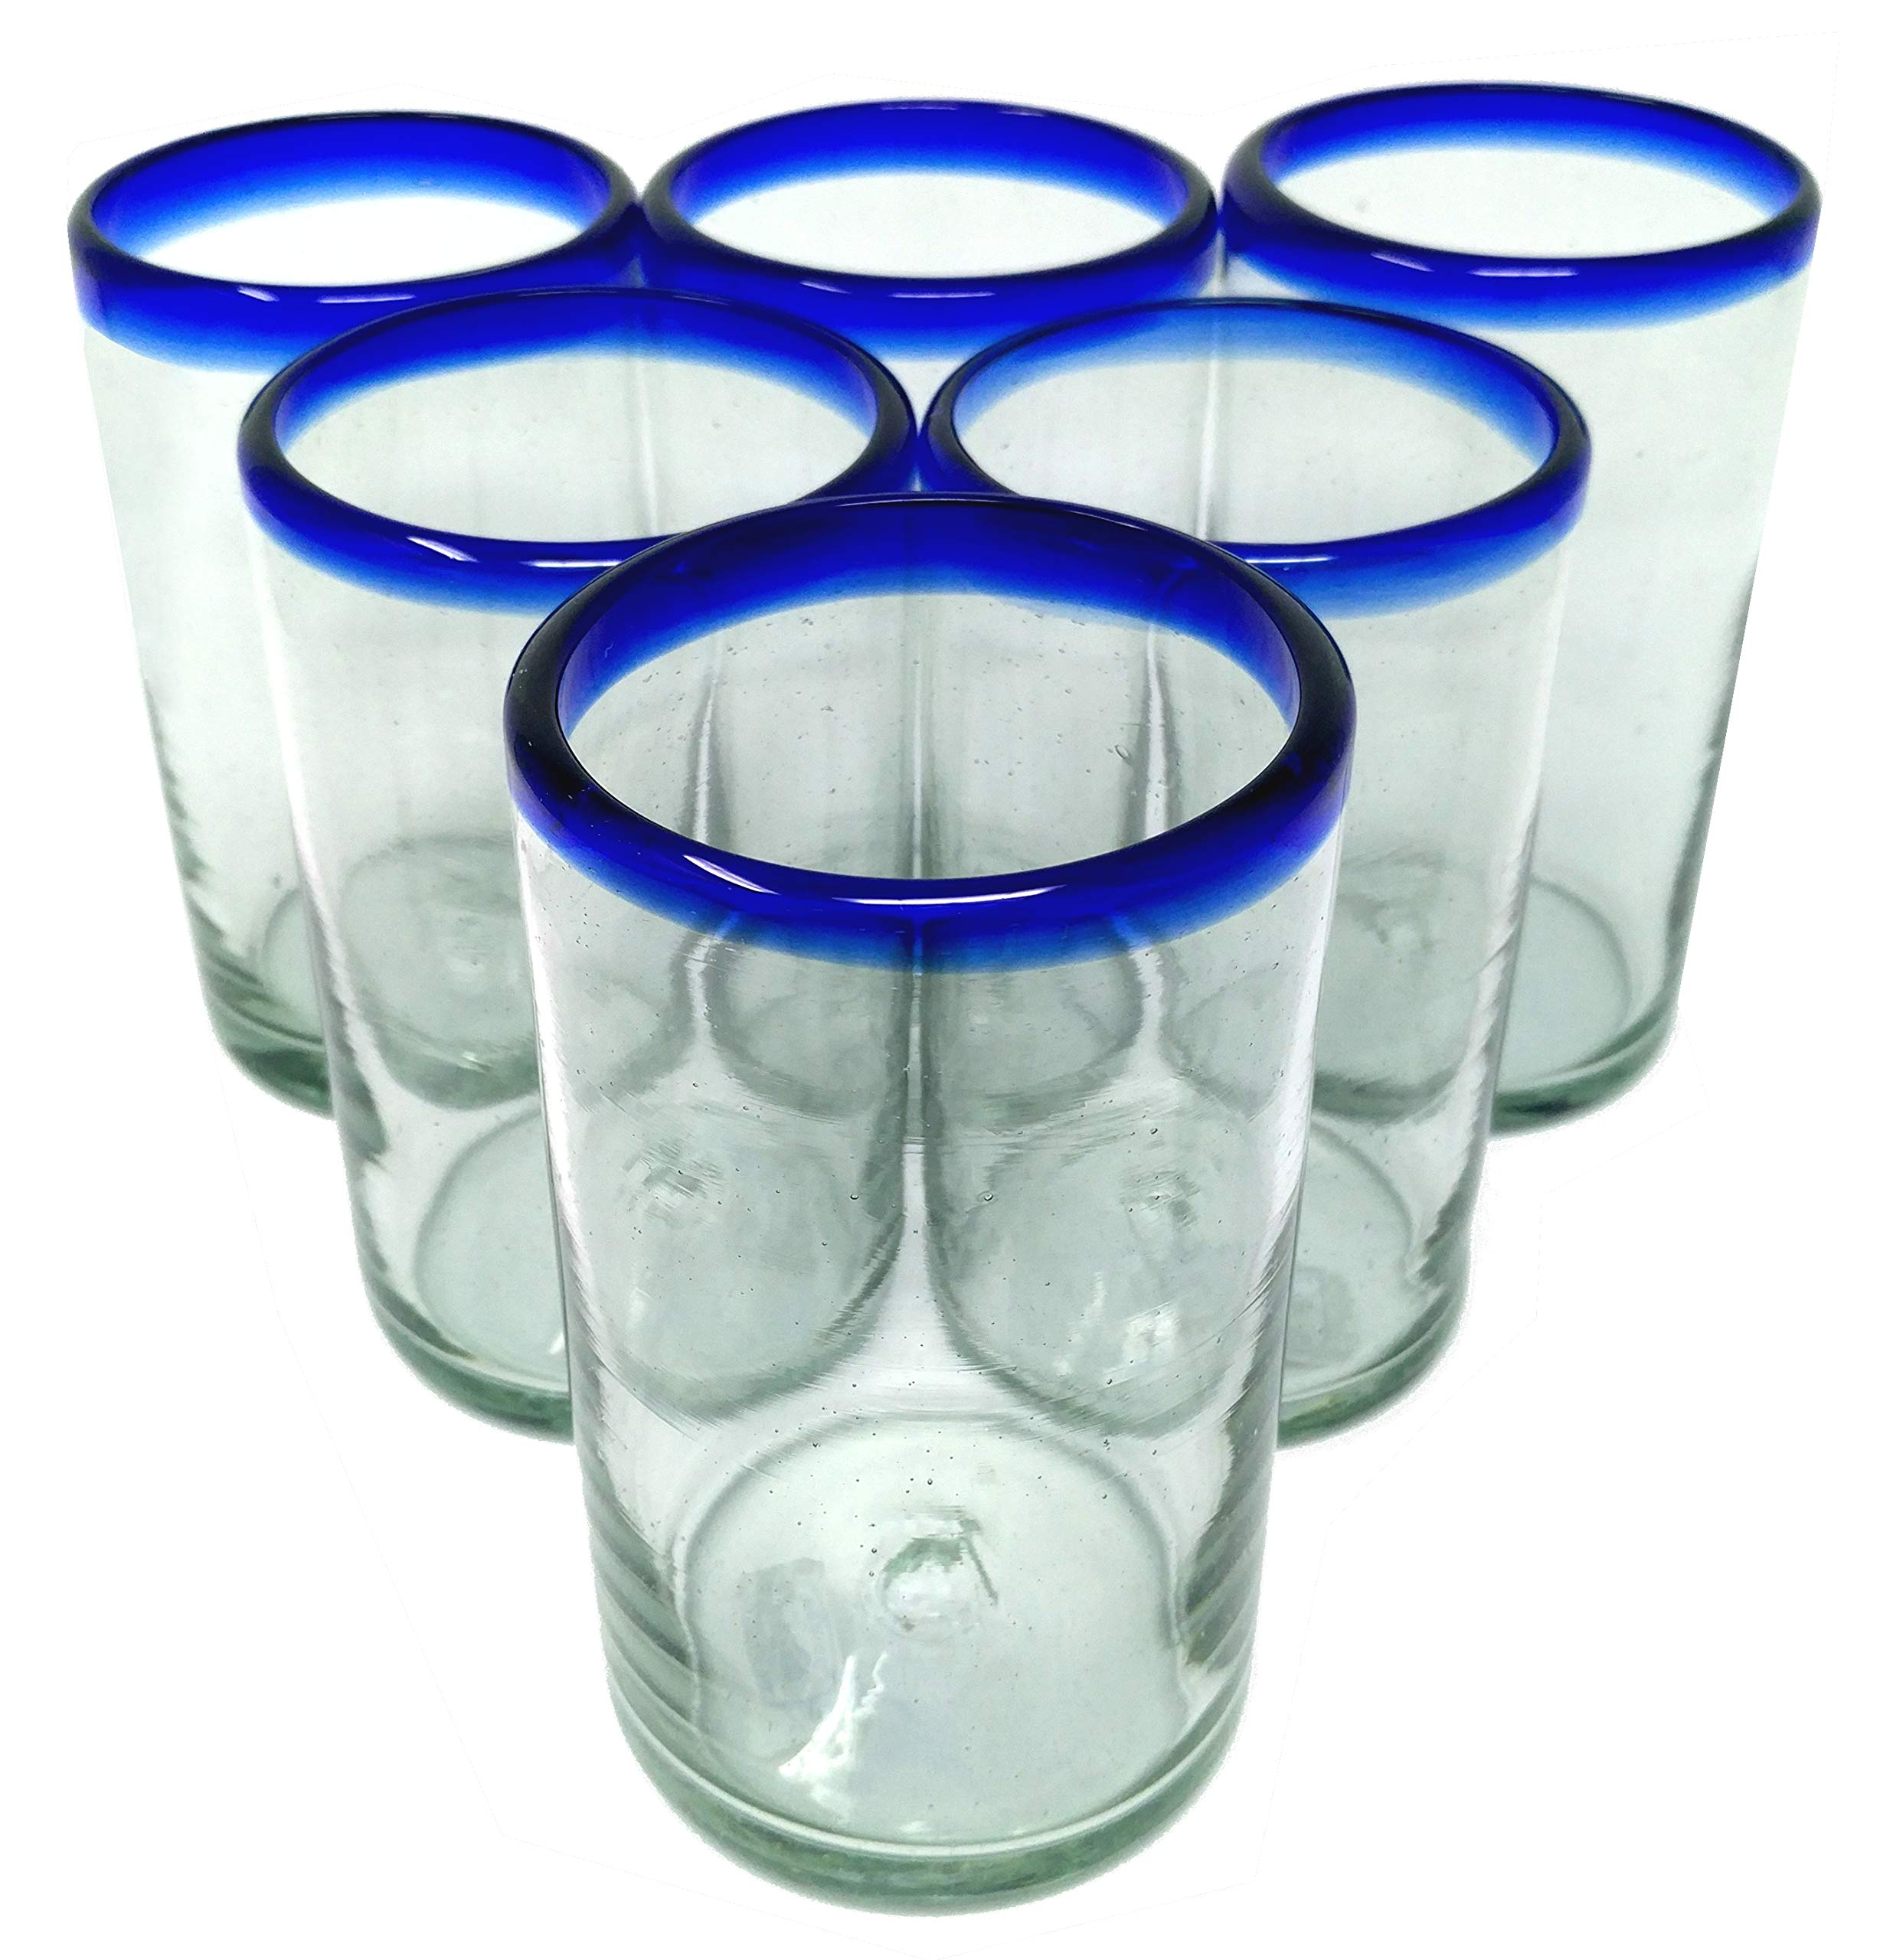 Hand Blown Mexican Drinking Glasses - Set of 6 Glasses with Cobalt Blue Rims (14 oz each)